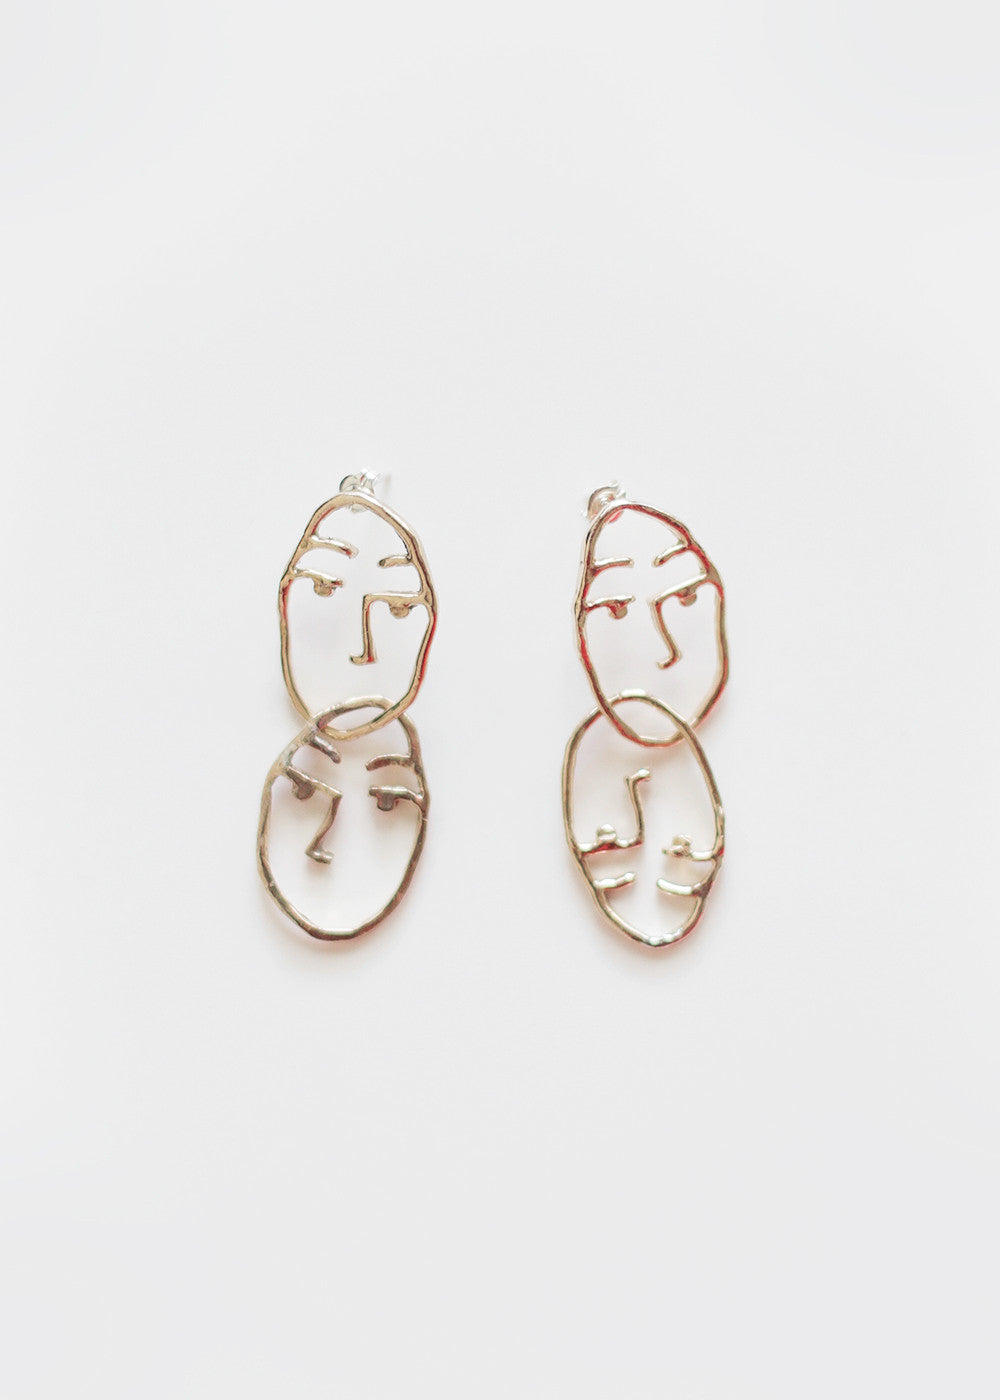 Open House Projects People Earrings - New Classics Studios  - 1